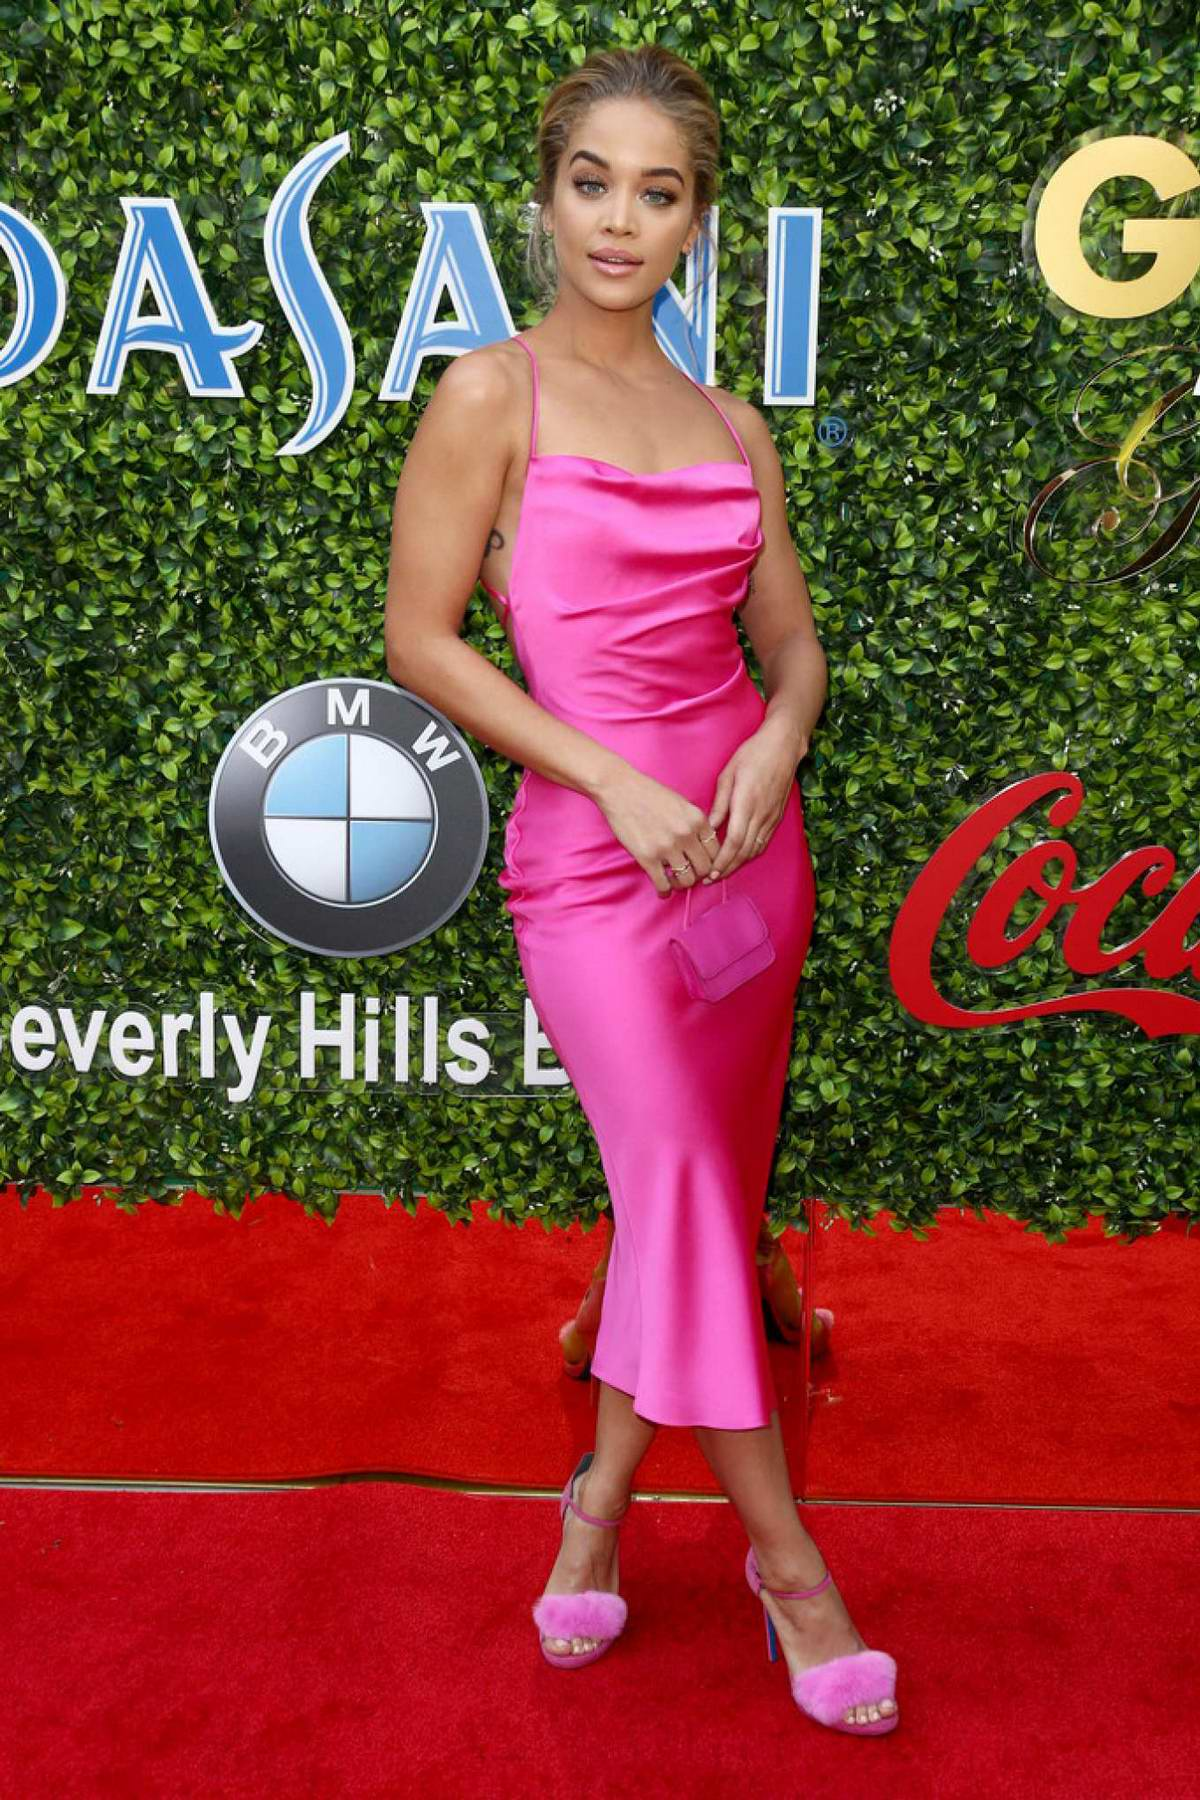 Jasmine Sanders attends the 7th Annual Gold Meets Golden event in Los Angeles